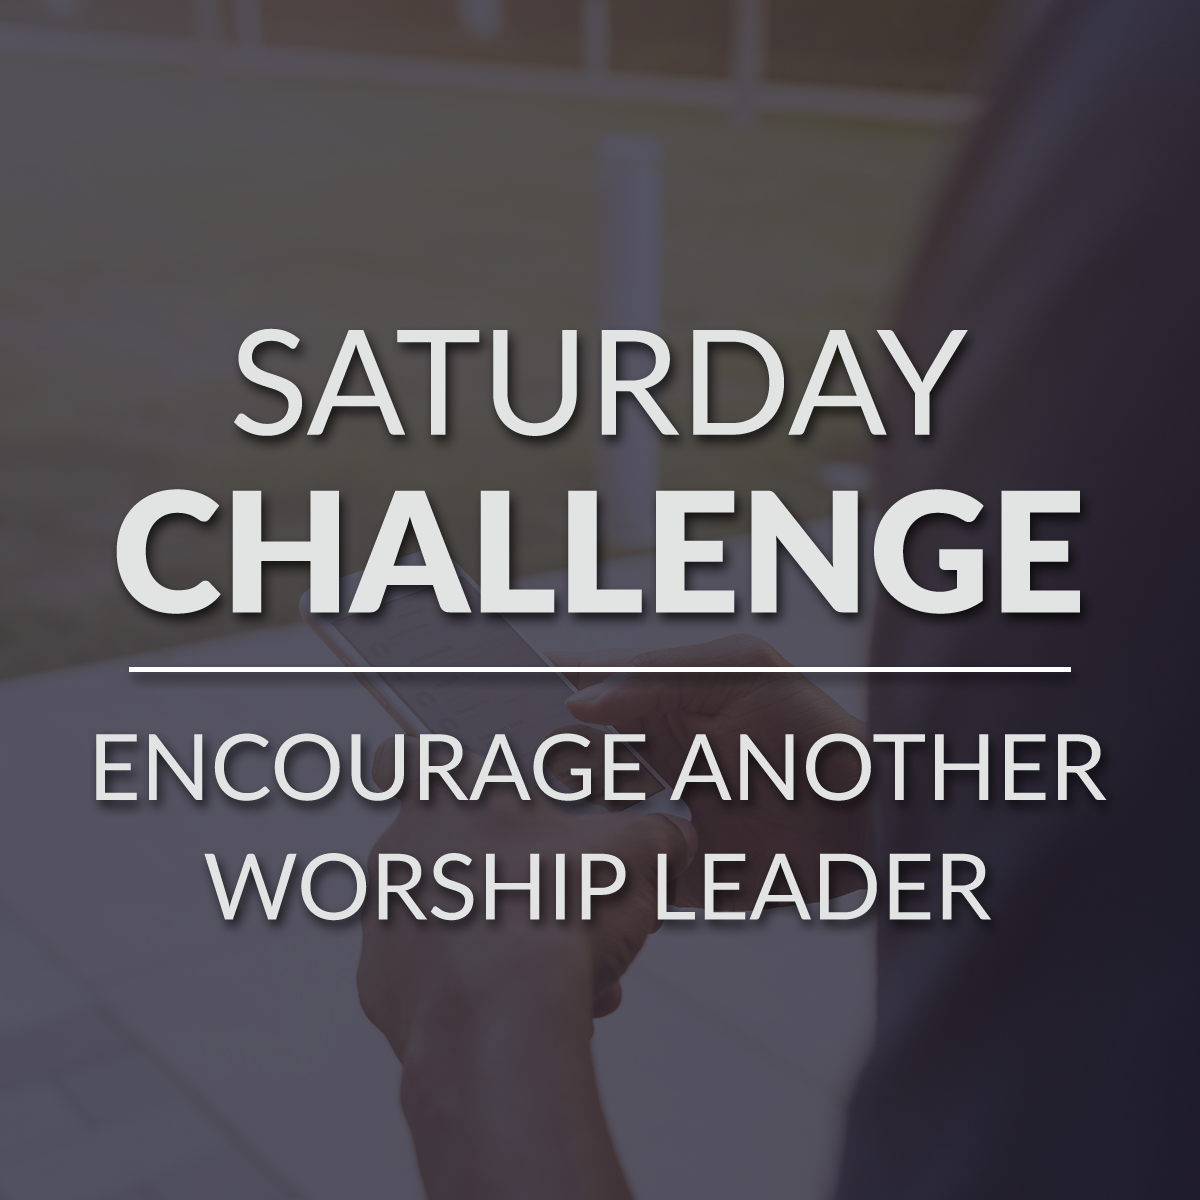 Encourage another worship leader